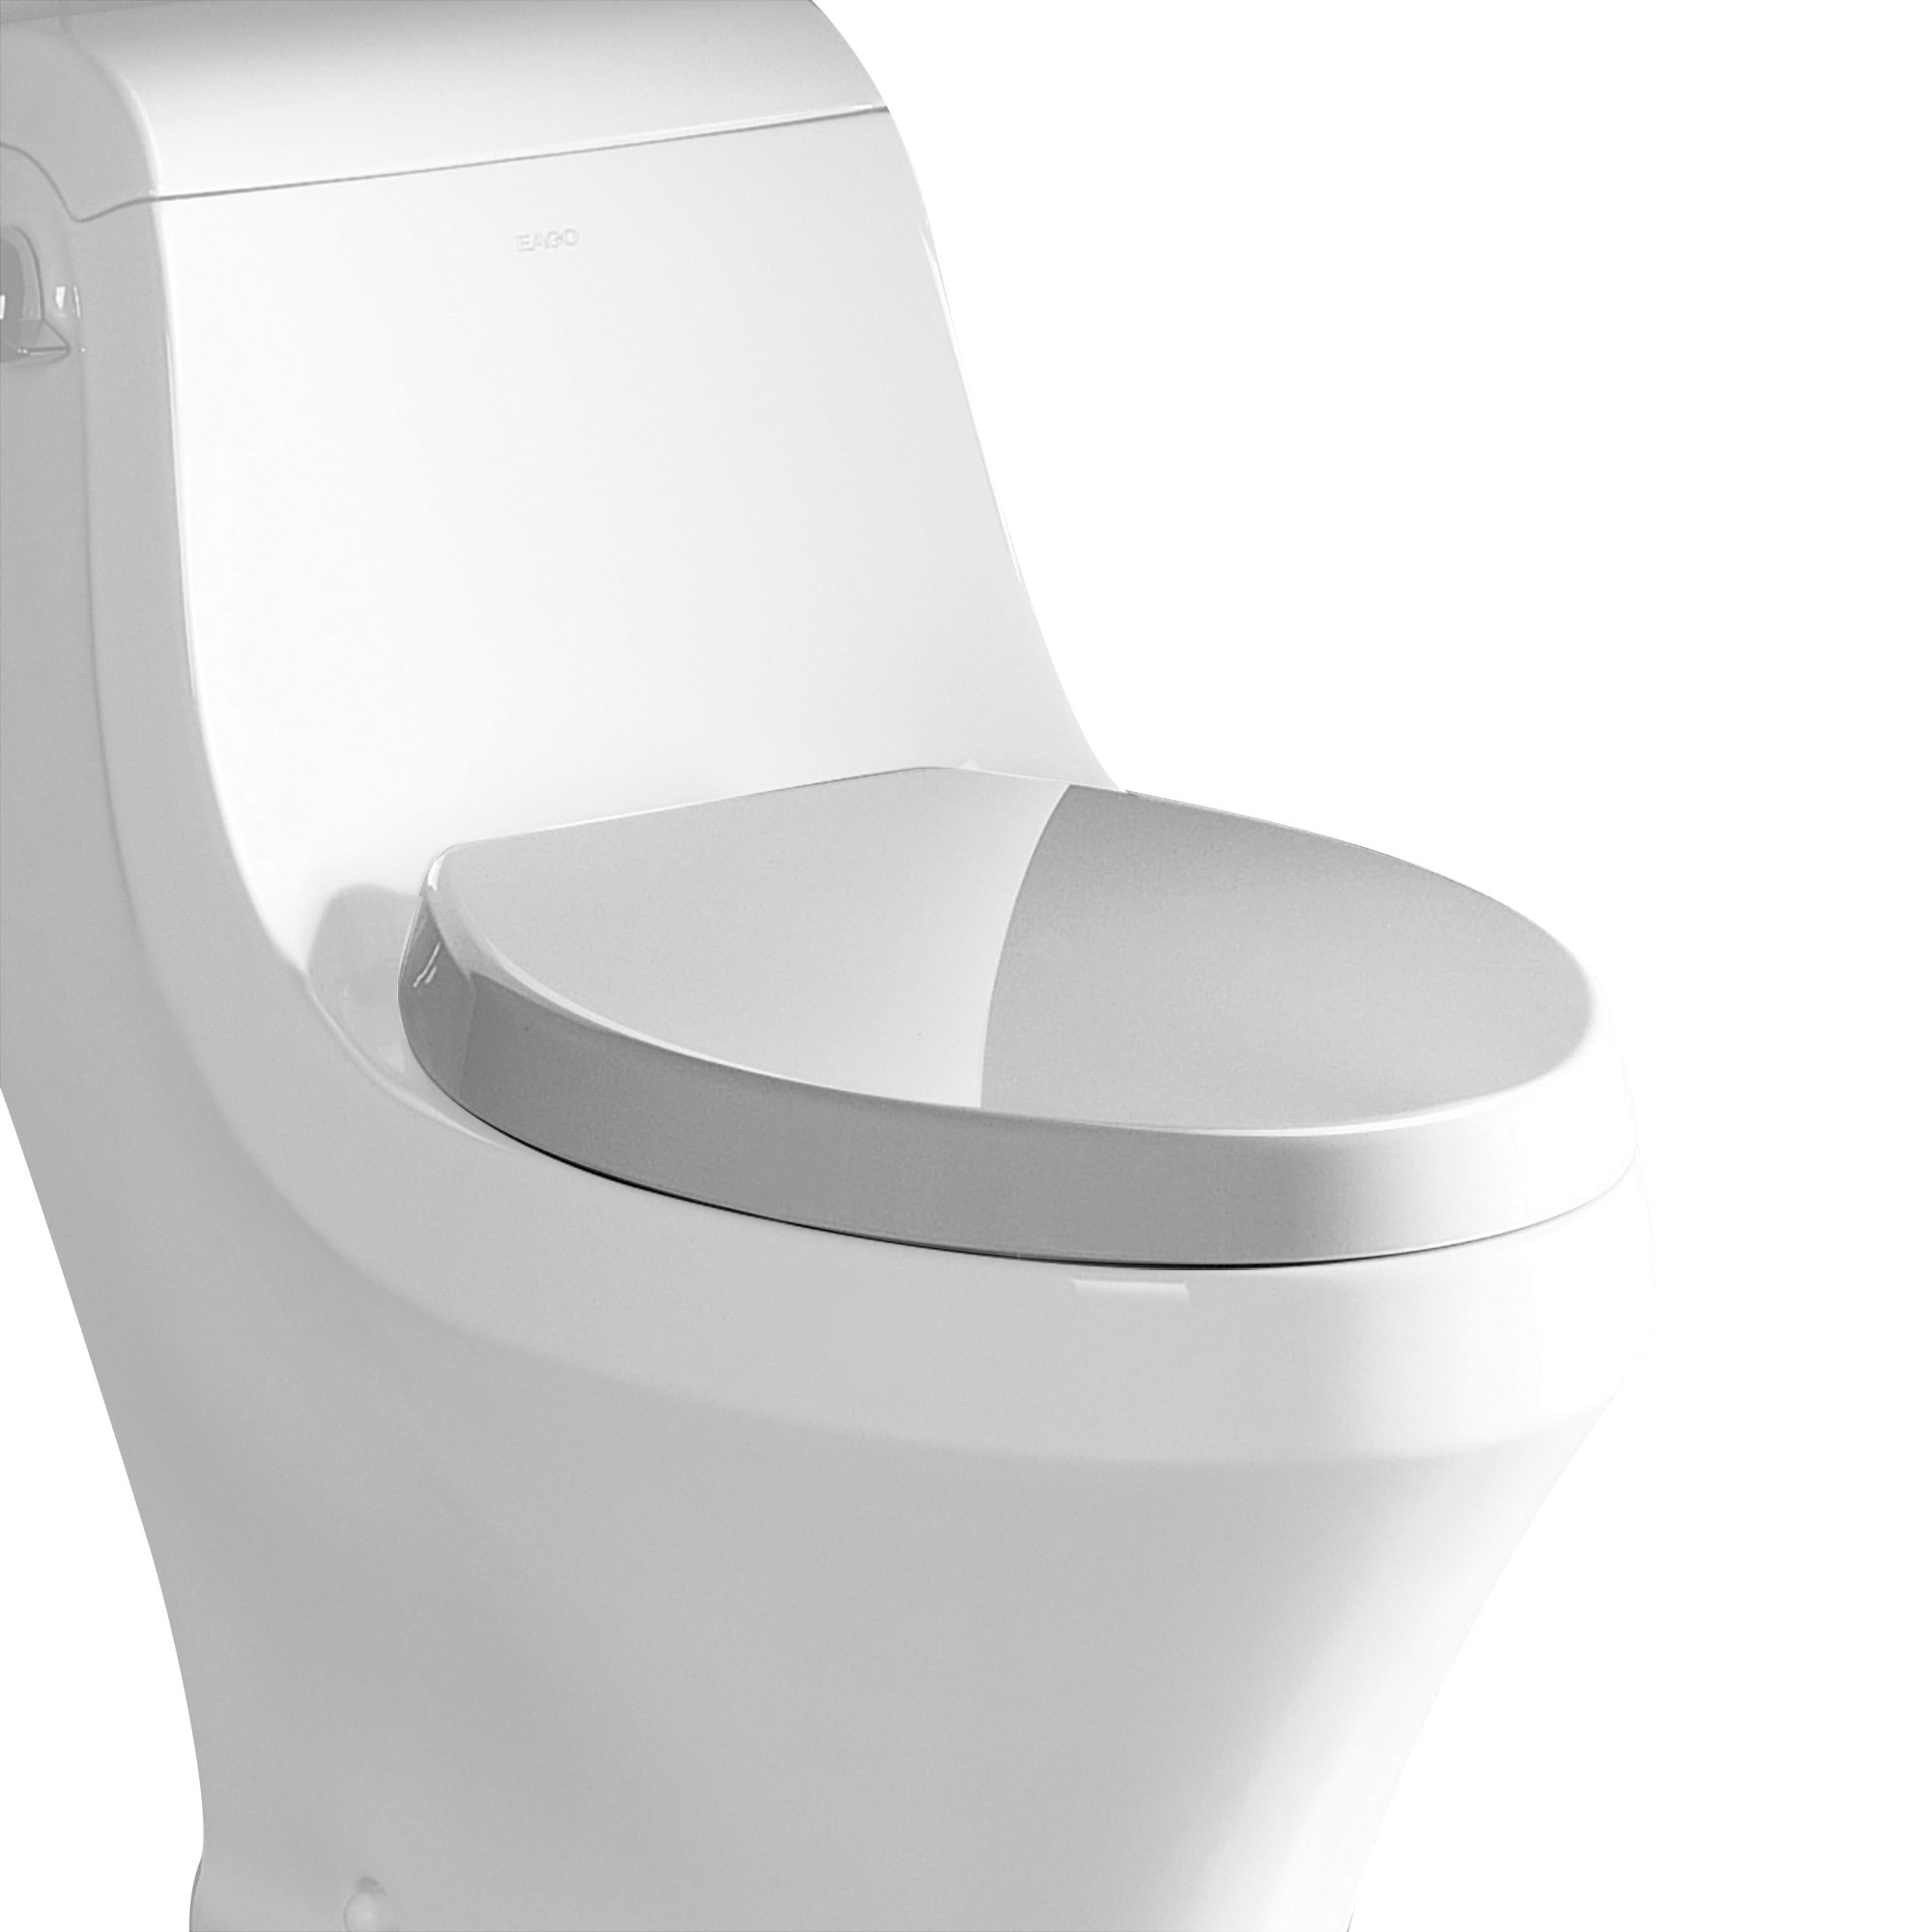 EAGO R-133SEAT Replacement Soft Closing Toilet Seat for TB133